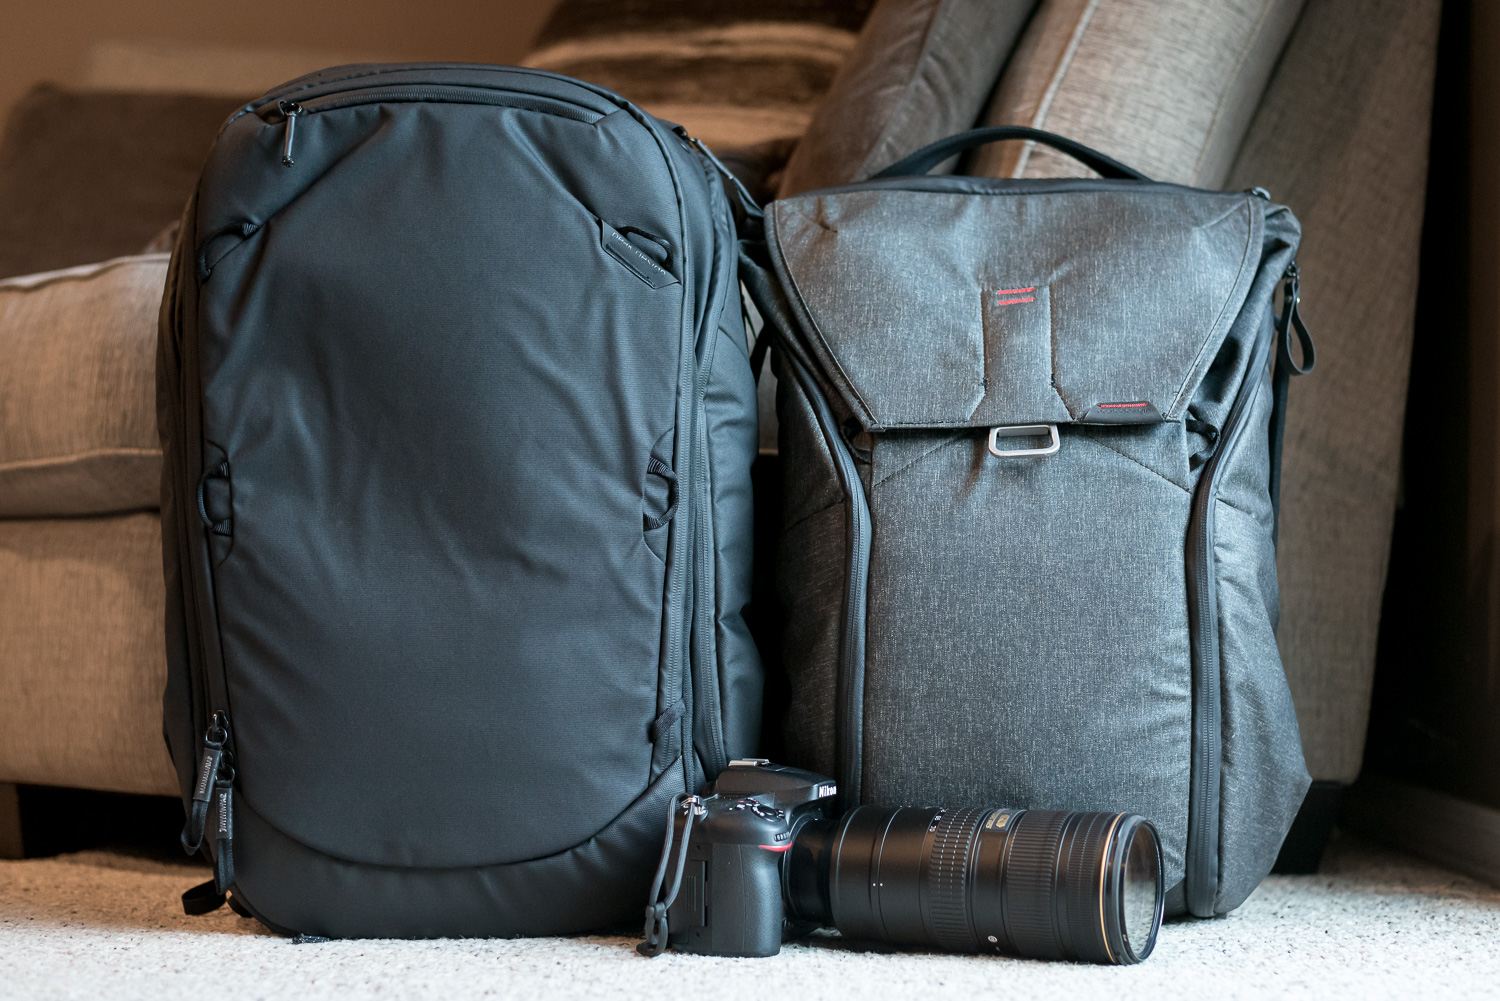 Image: The 45L Travel Backpack compared to my 35L Everyday Backpack, with a DSLR and 70-200 lens for...